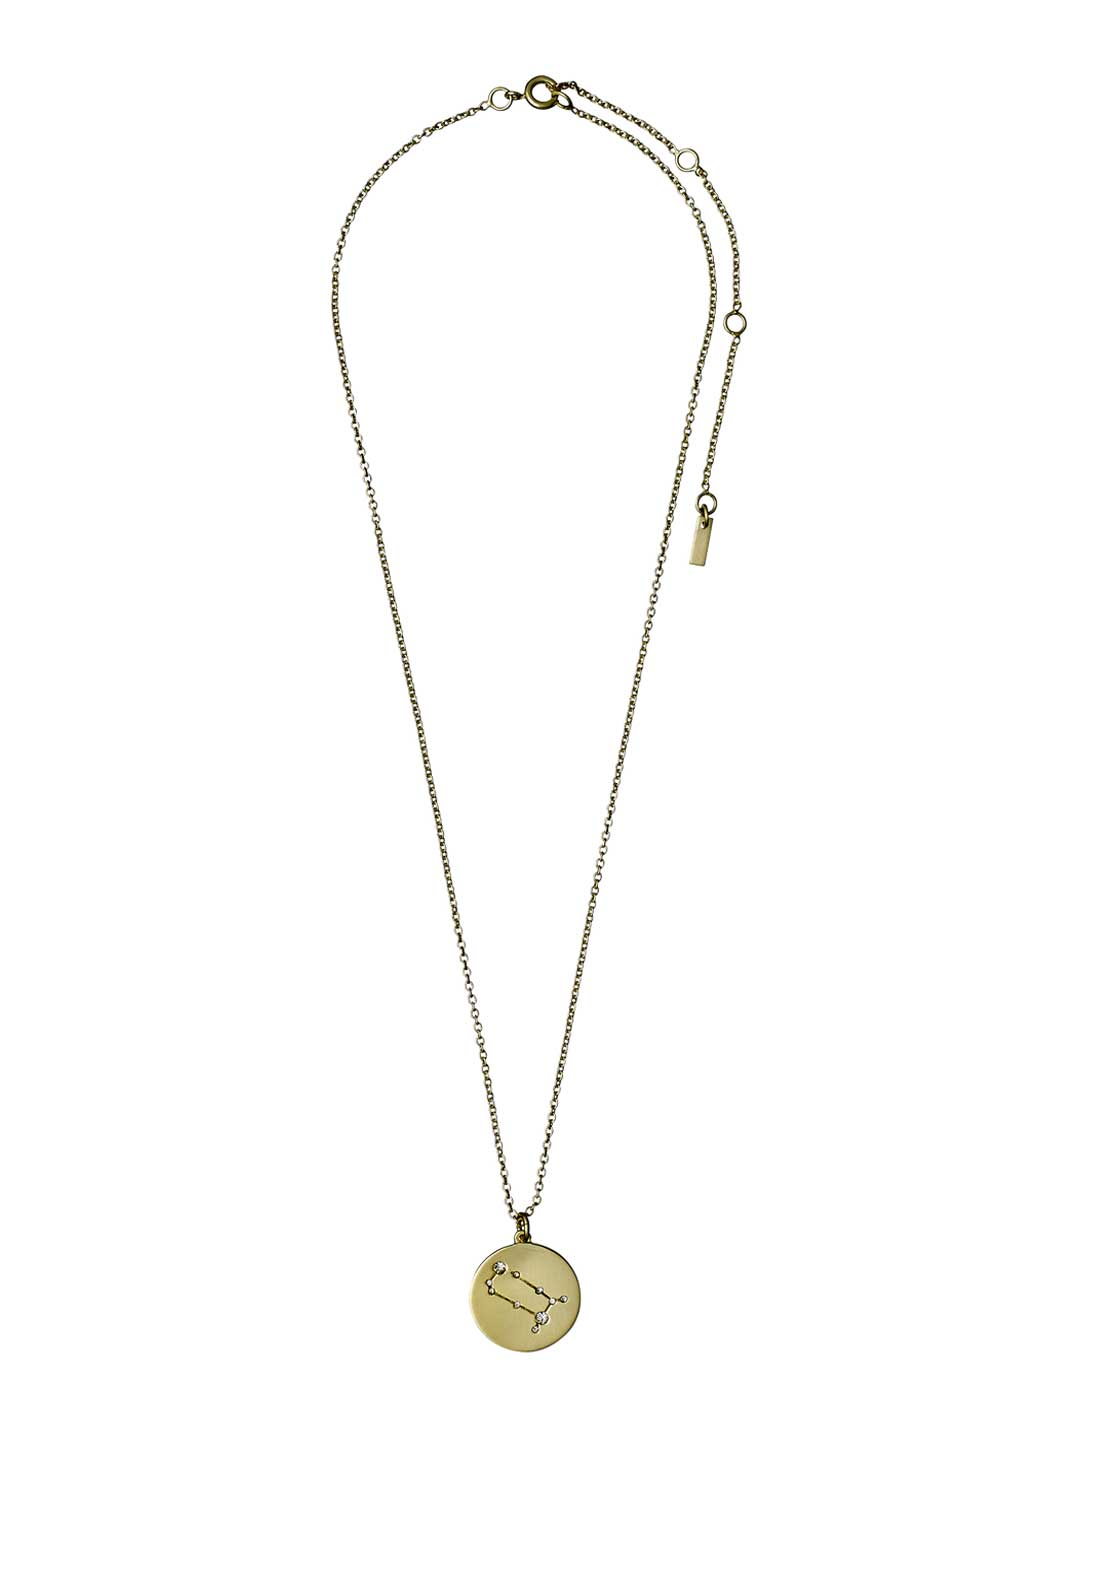 Pilgrim Gemini Zodiac Sign Necklace, Gold